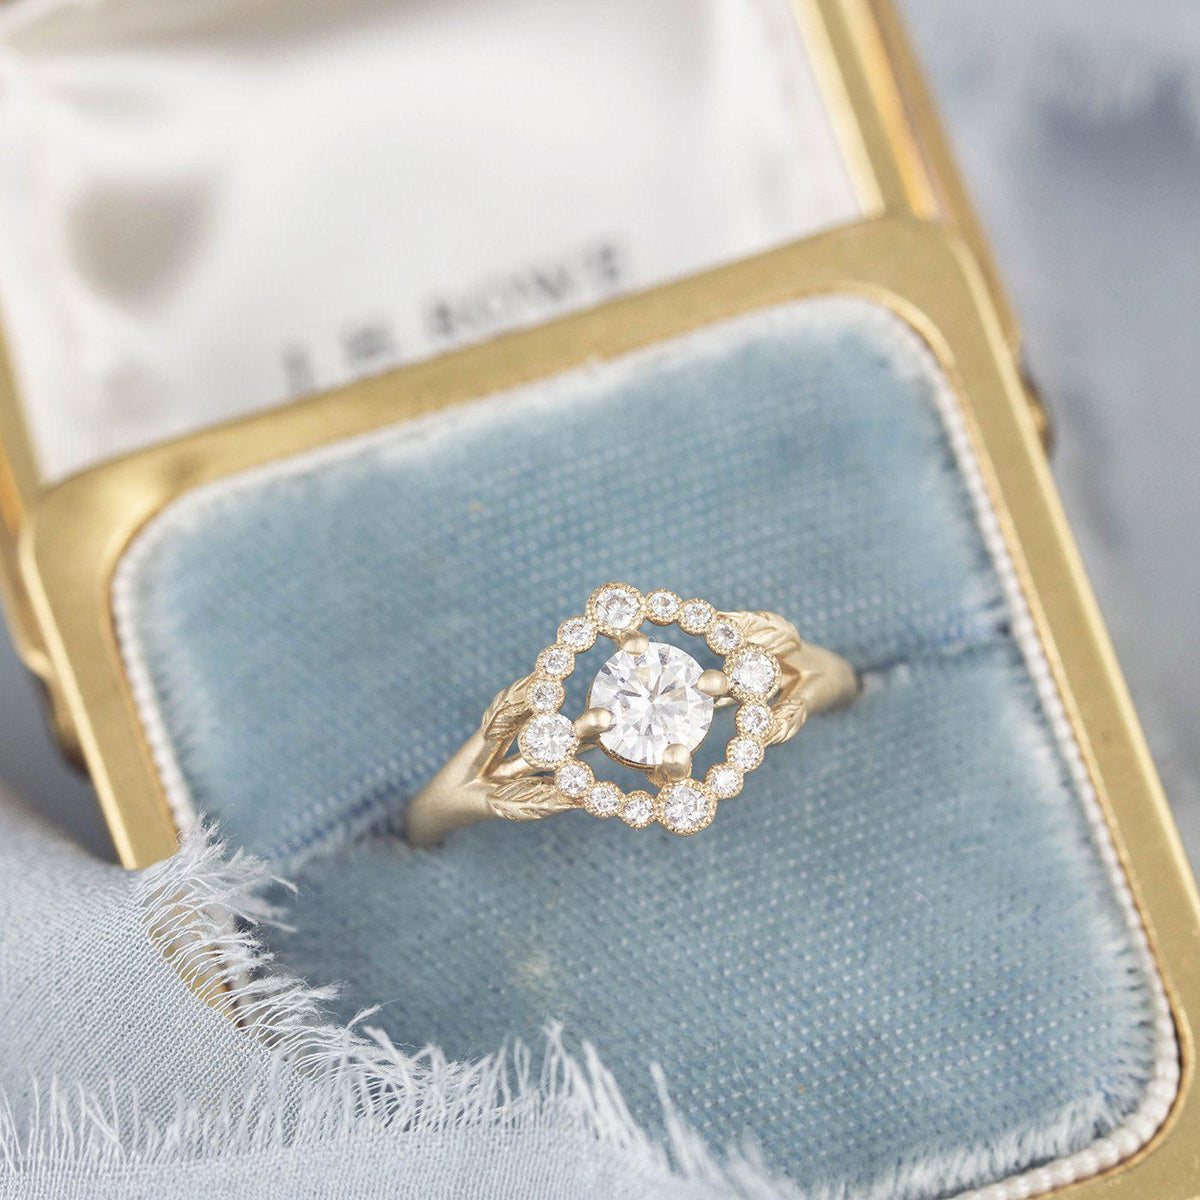 Scarlett Vintage Inspired Engagement Ring with leaves